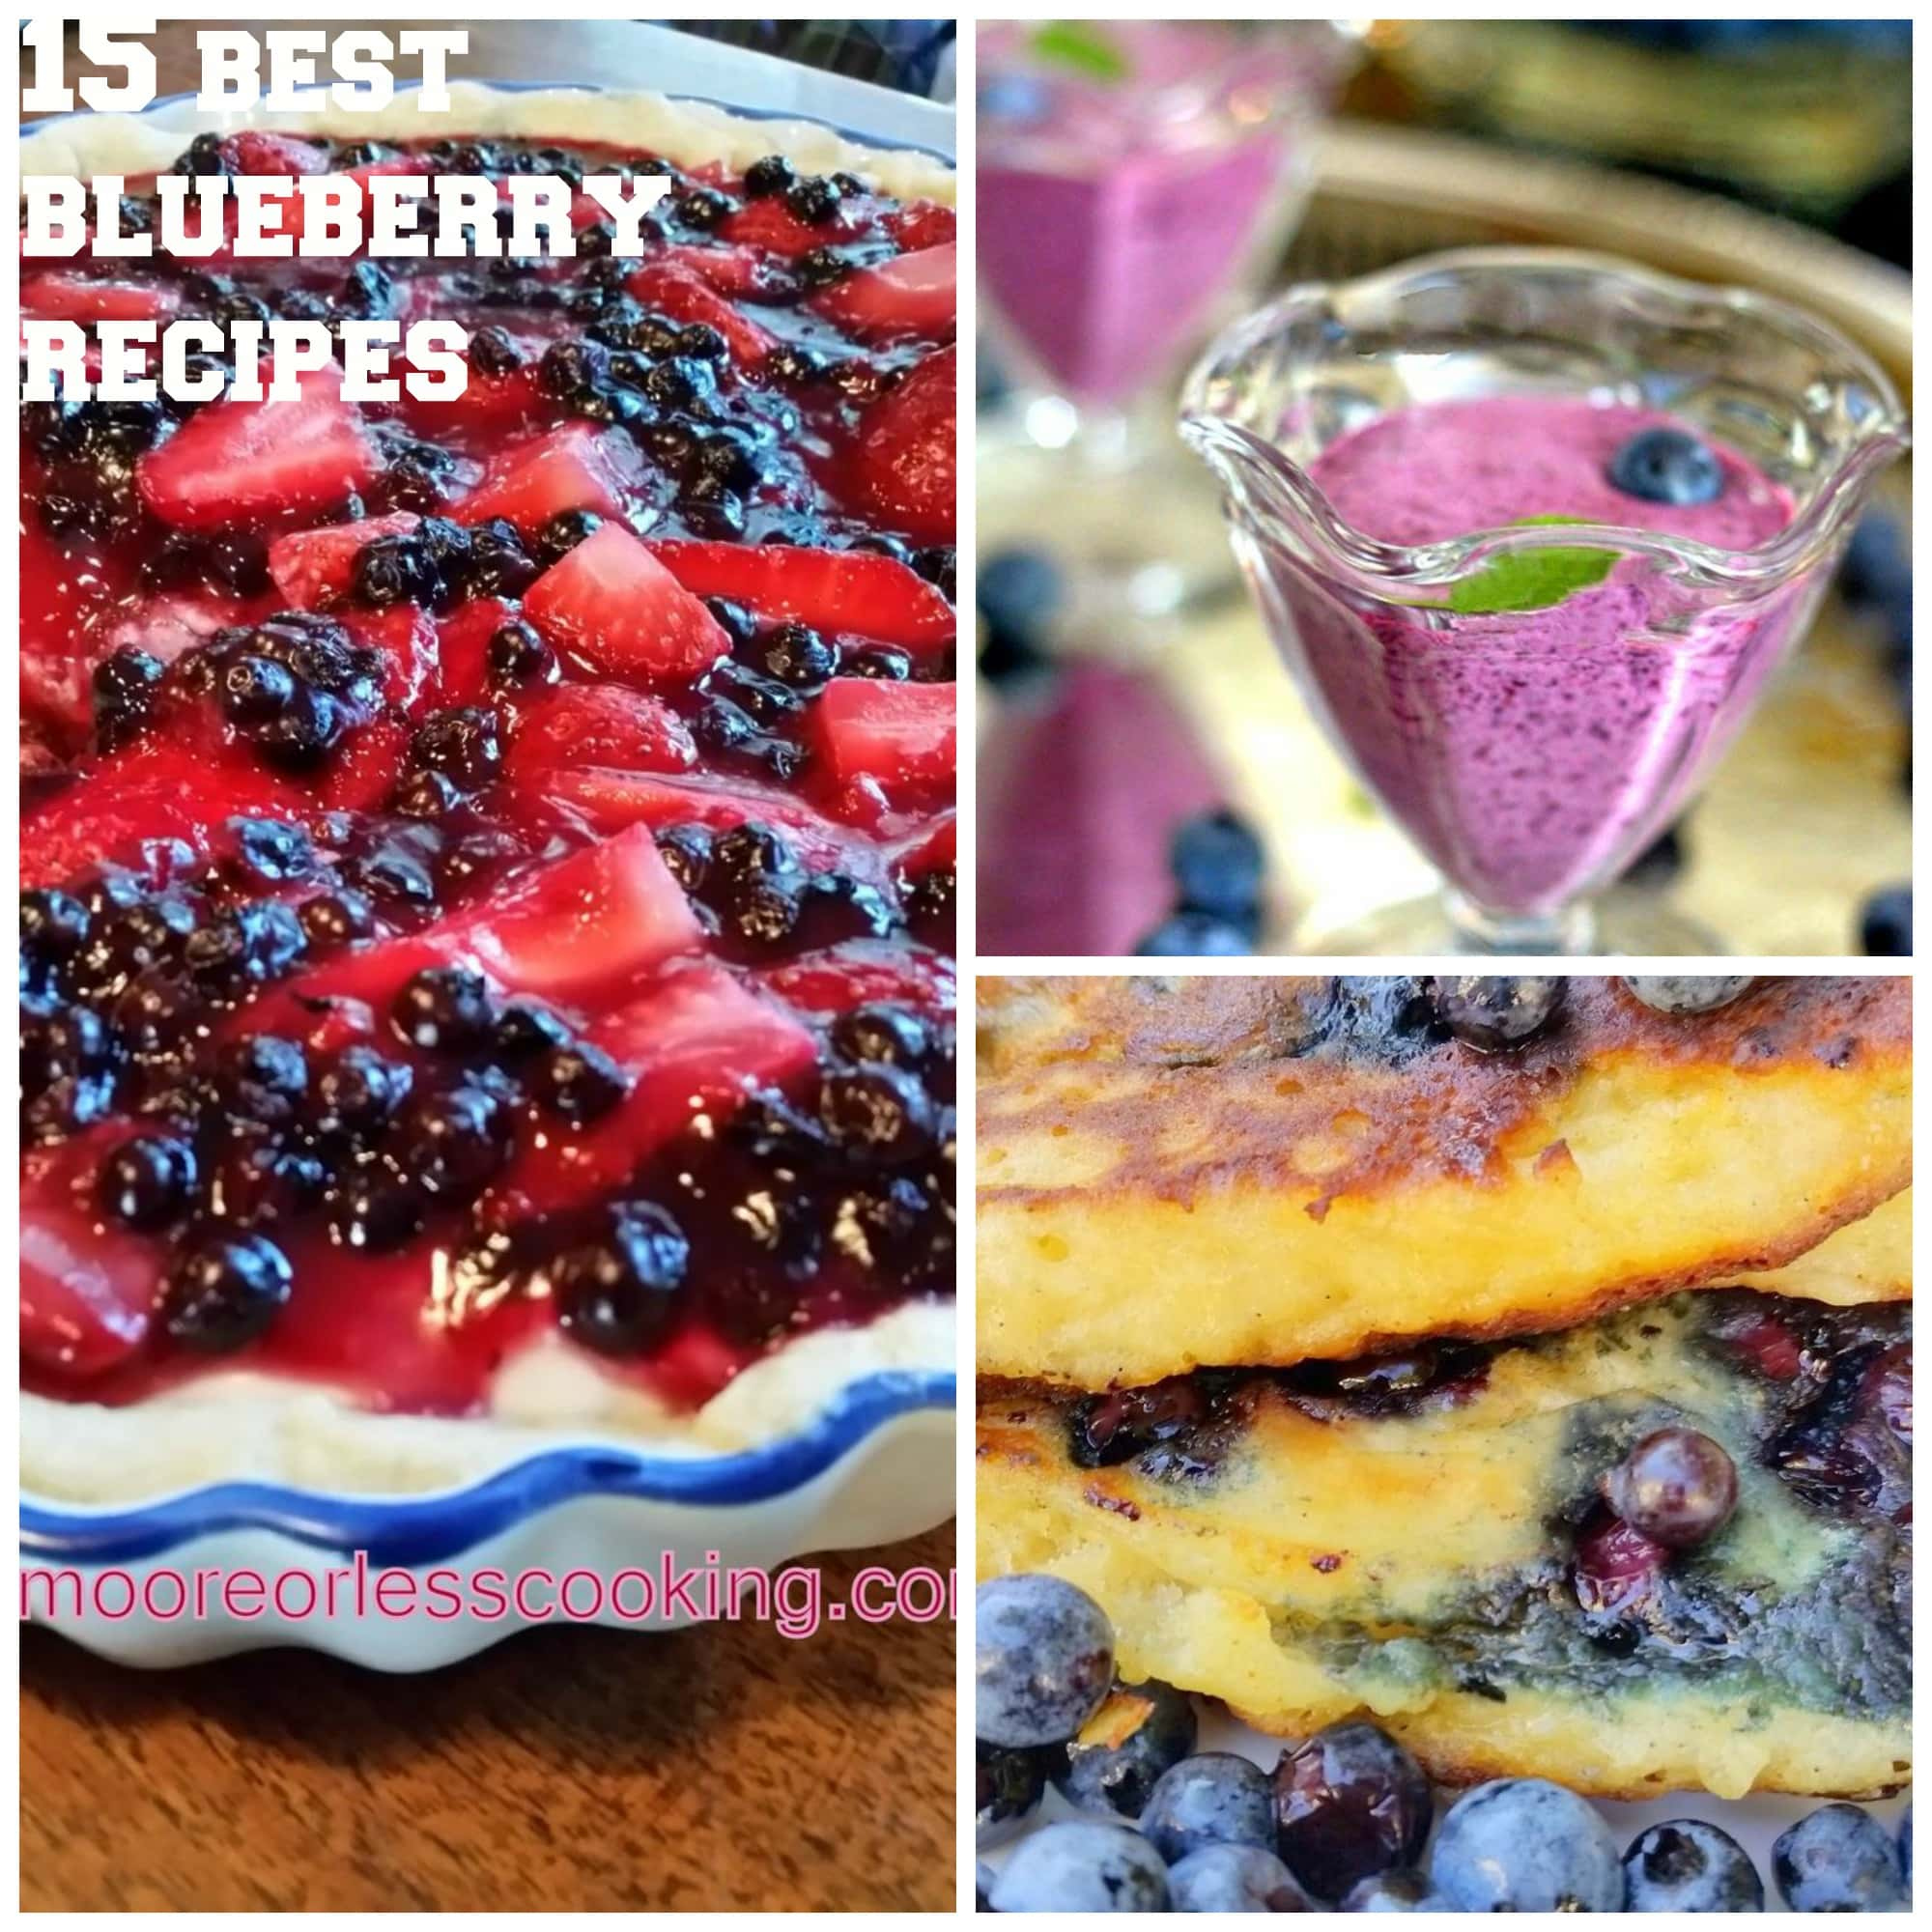 15 Very Best Ways to Welcome Blueberries!